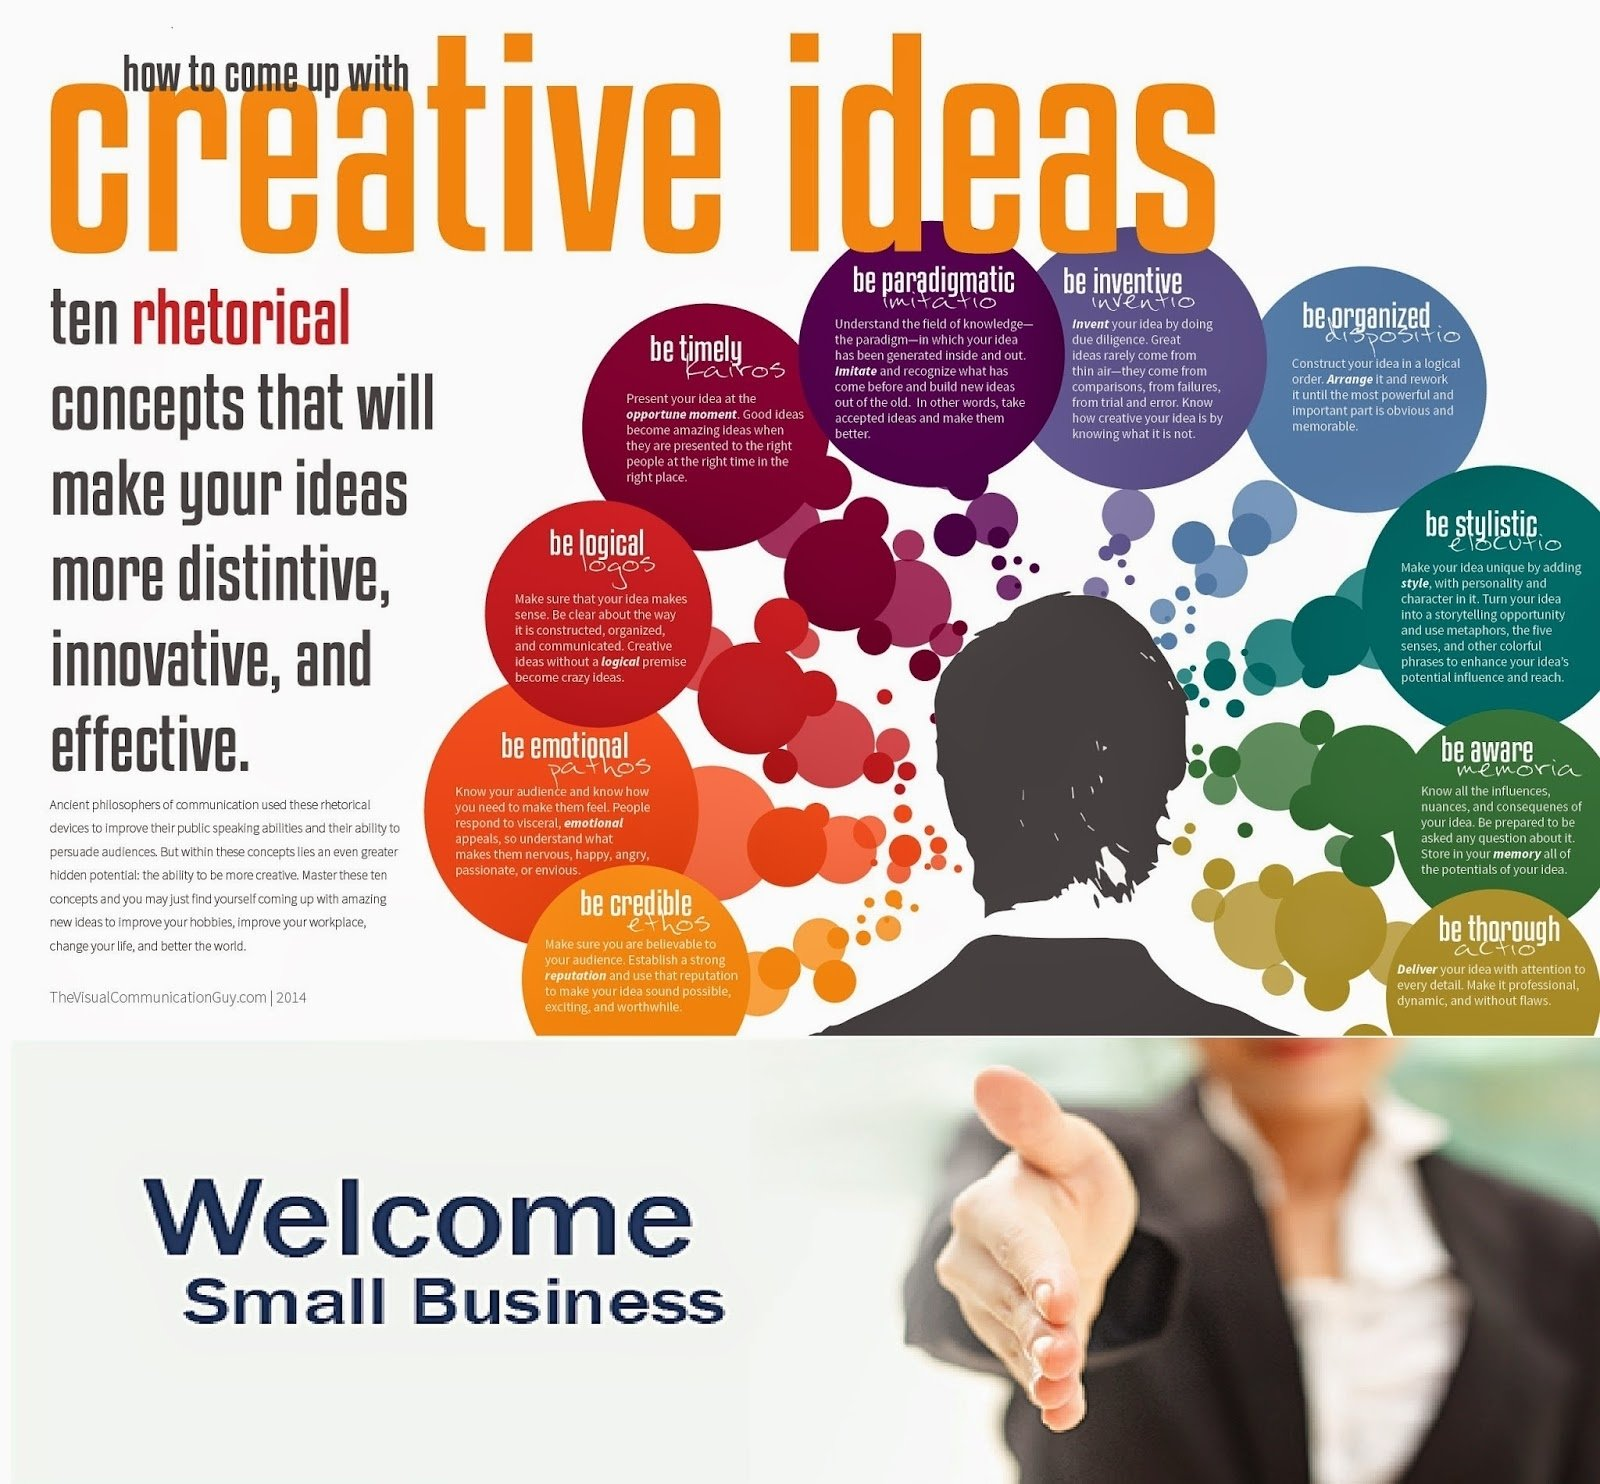 10 Awesome Ideas For A Small Business simple creative ideas and strategies for starting small business 1